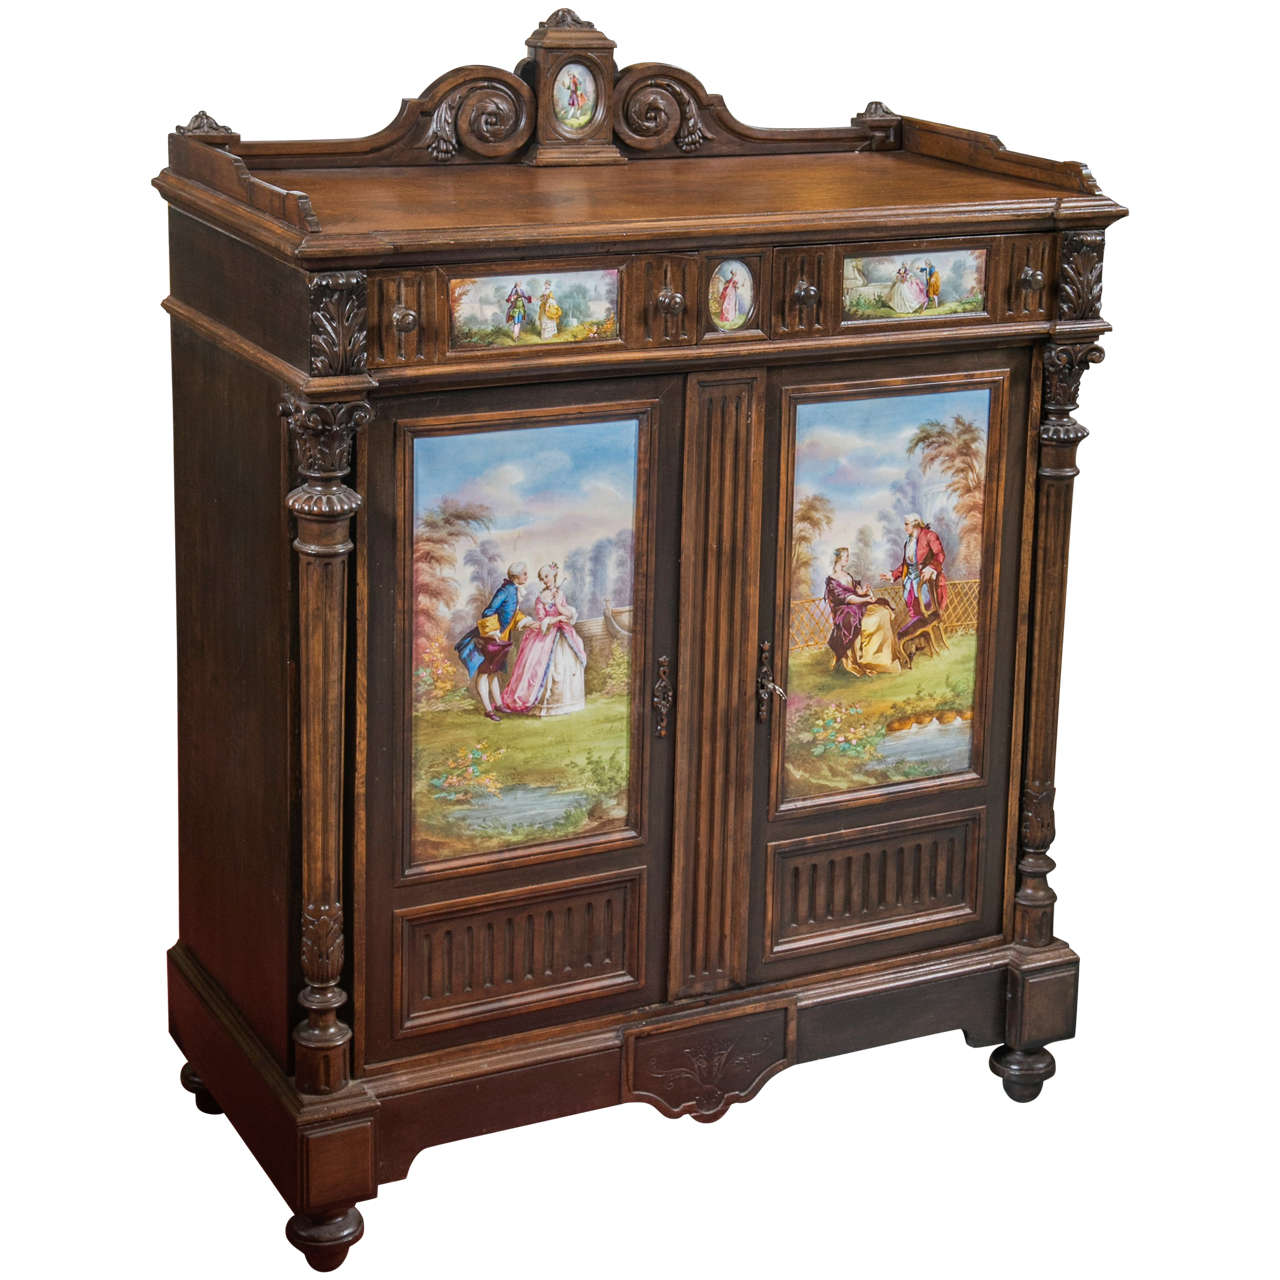 Charmant Antique Jelly Cabinet With Hand Painted Pastoral Medallion Panels For Sale